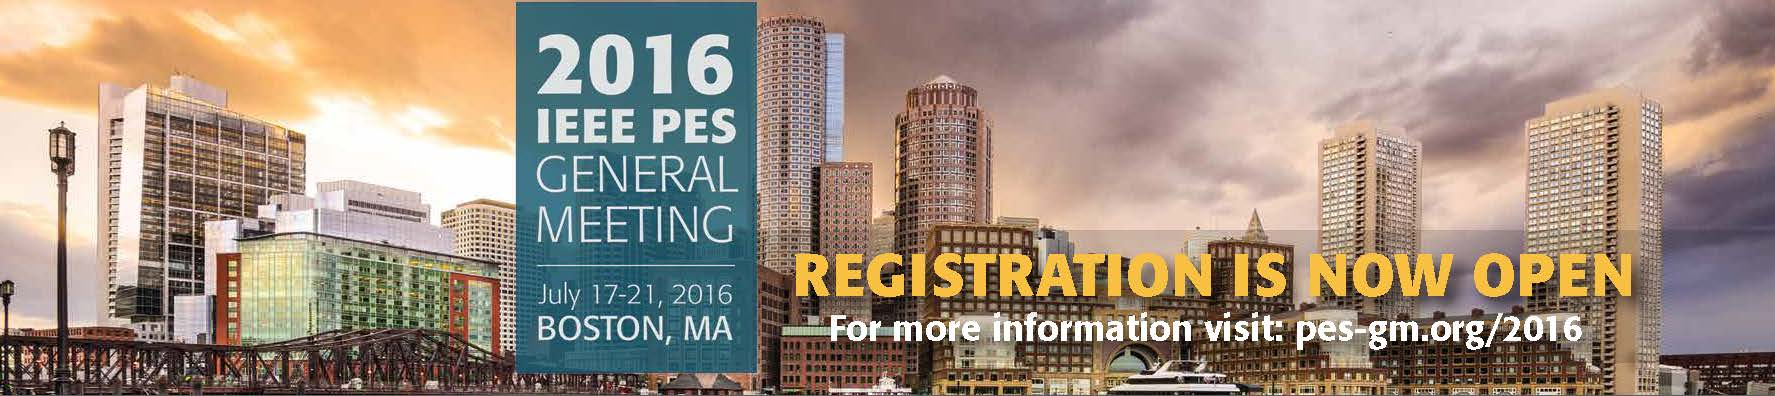 2016 IEEE PES General Meeting Registration Now Open!